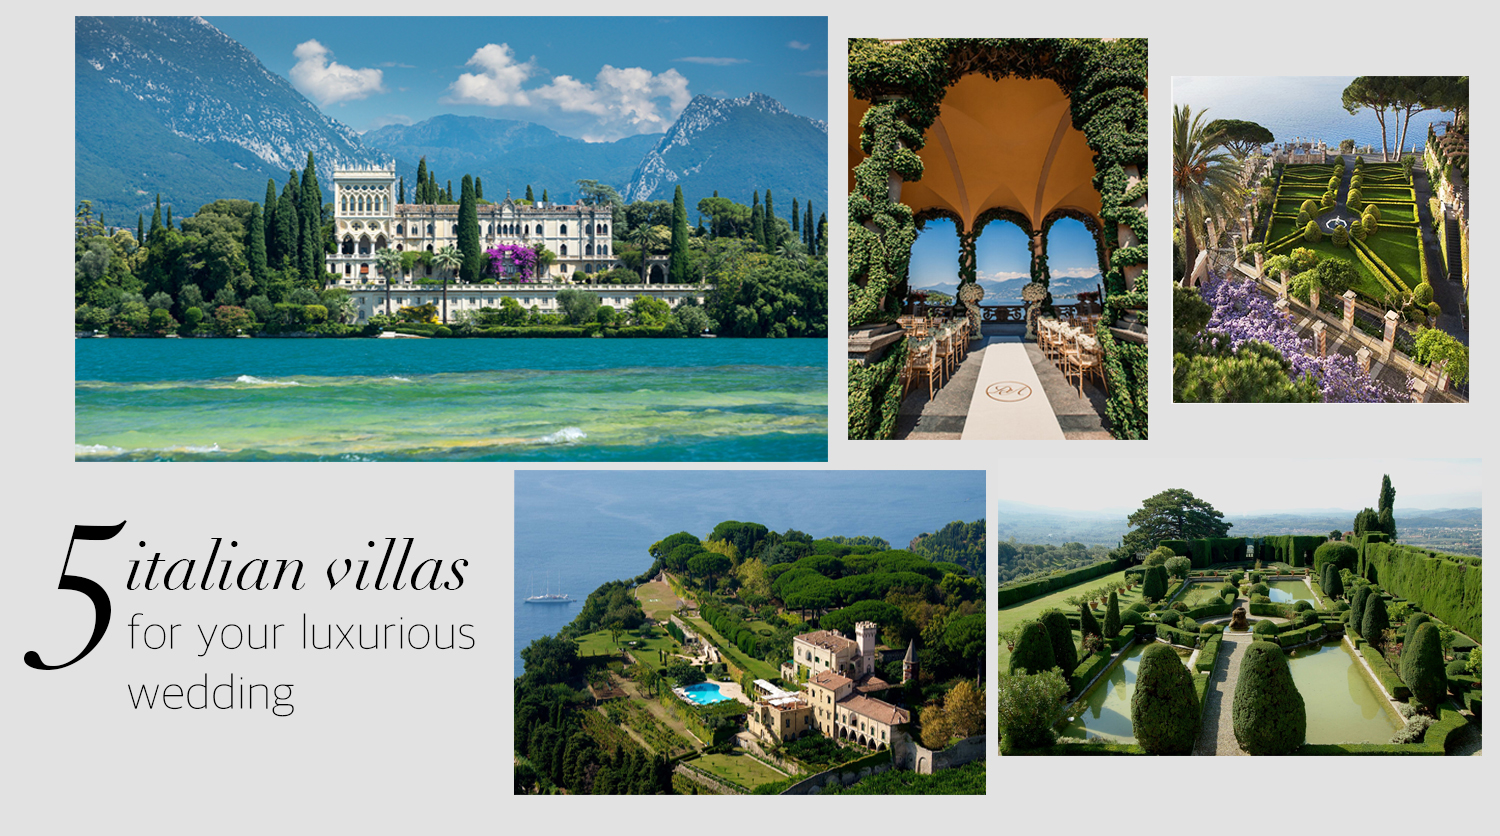 Top-5 Italian villas for your wedding